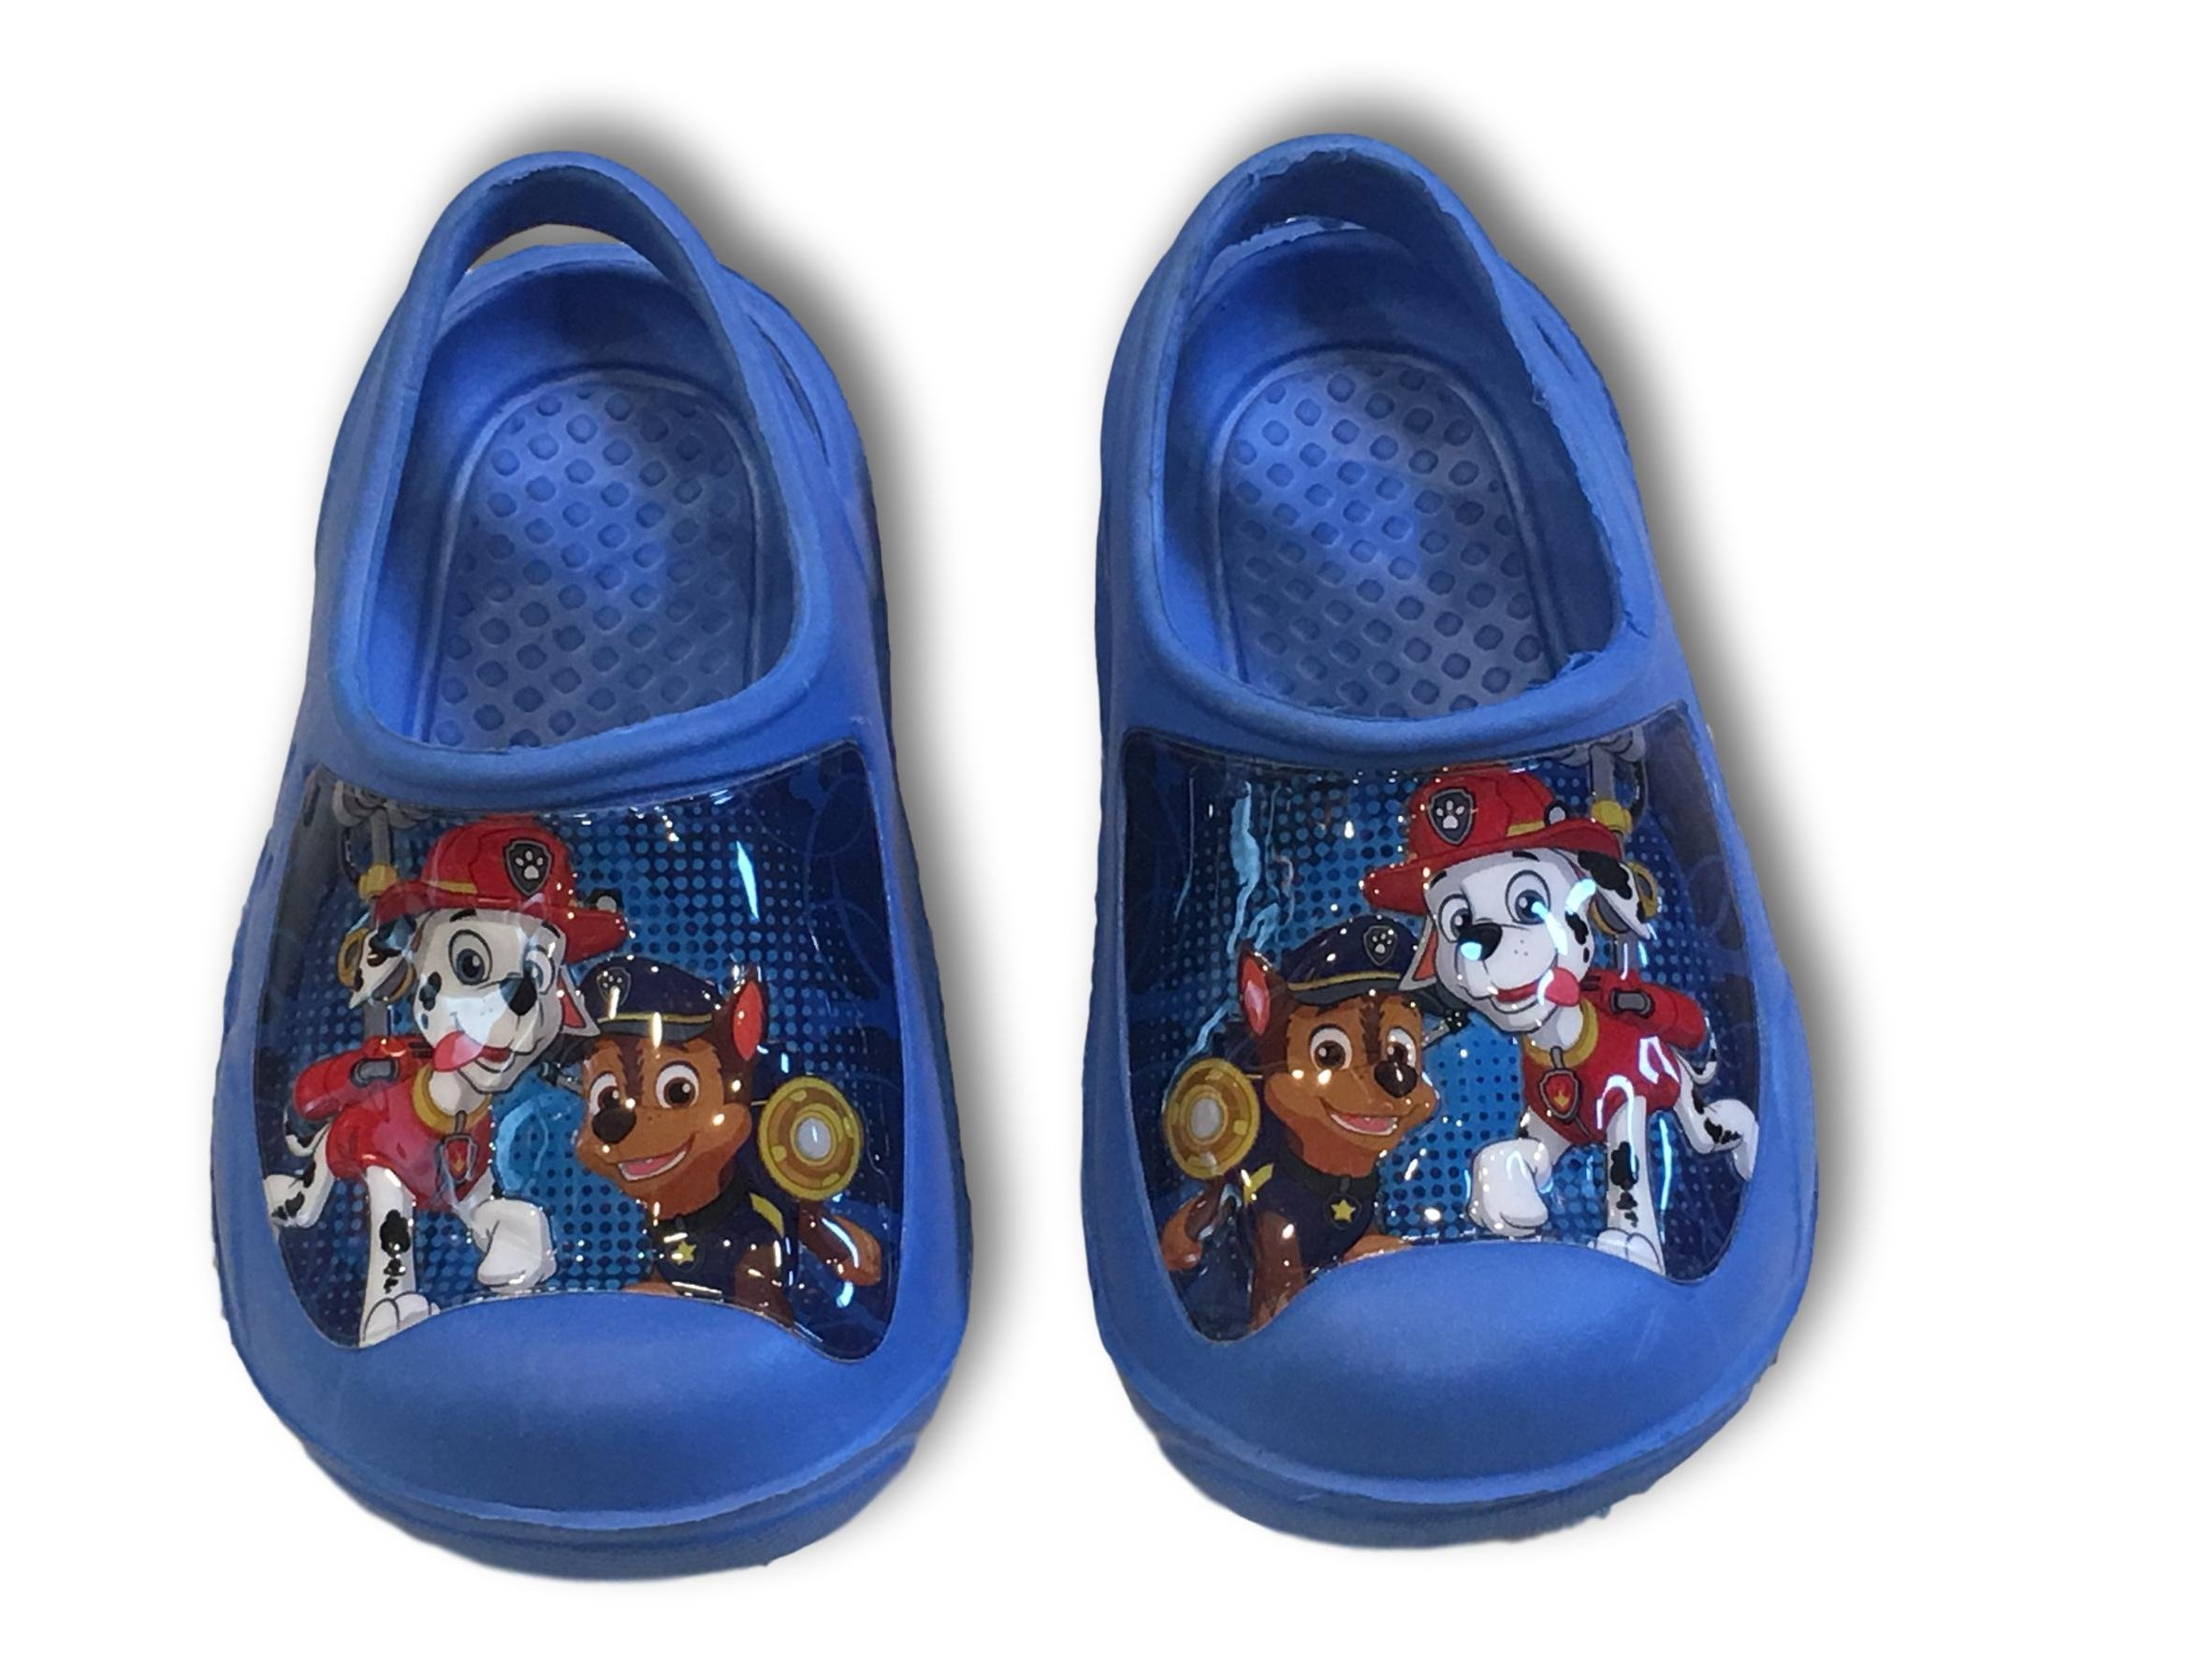 PAW Patrol Marshall & Chase Nickelodeon Molded Clogs Sandals Shoes (Medium (7/8))